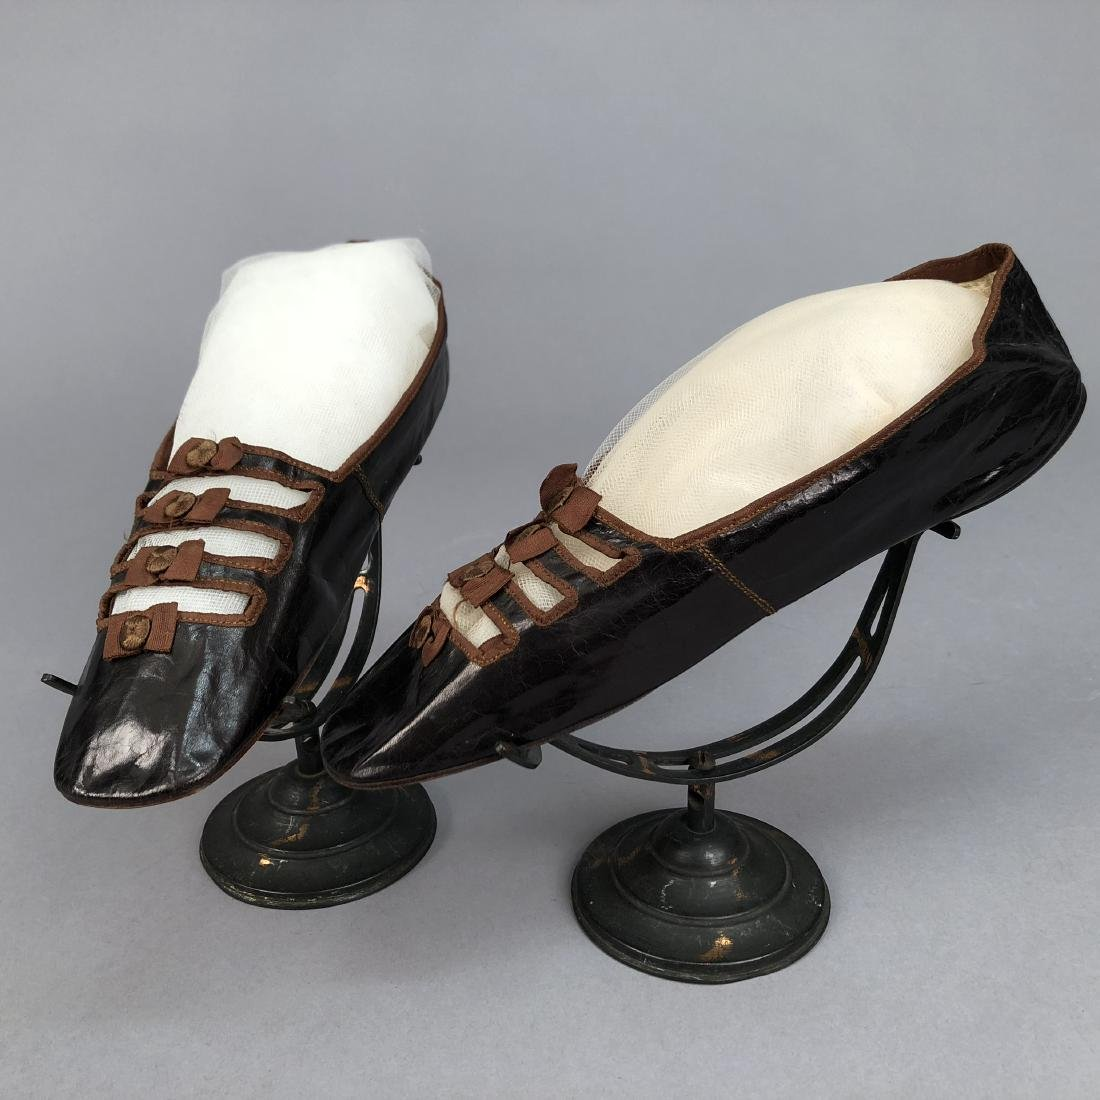 KID SHOES with BARETTE VAMP, 1840s - 1850s